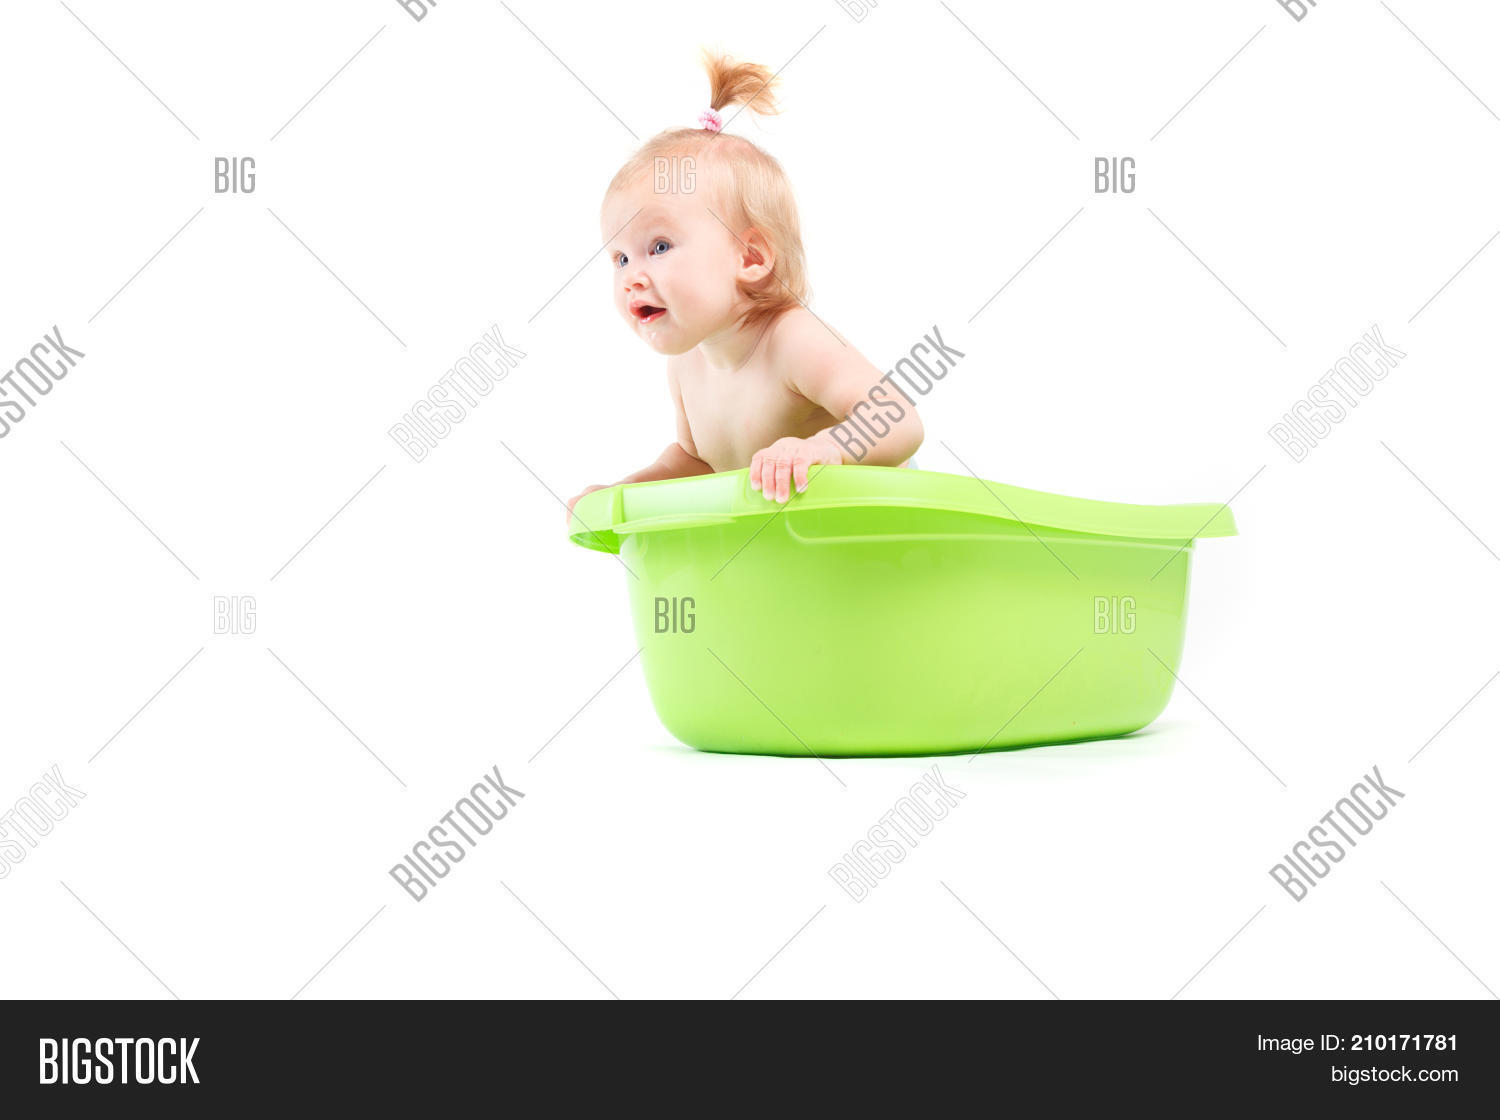 Pretty Cute Baby Girl Image & Photo (Free Trial) | Bigstock